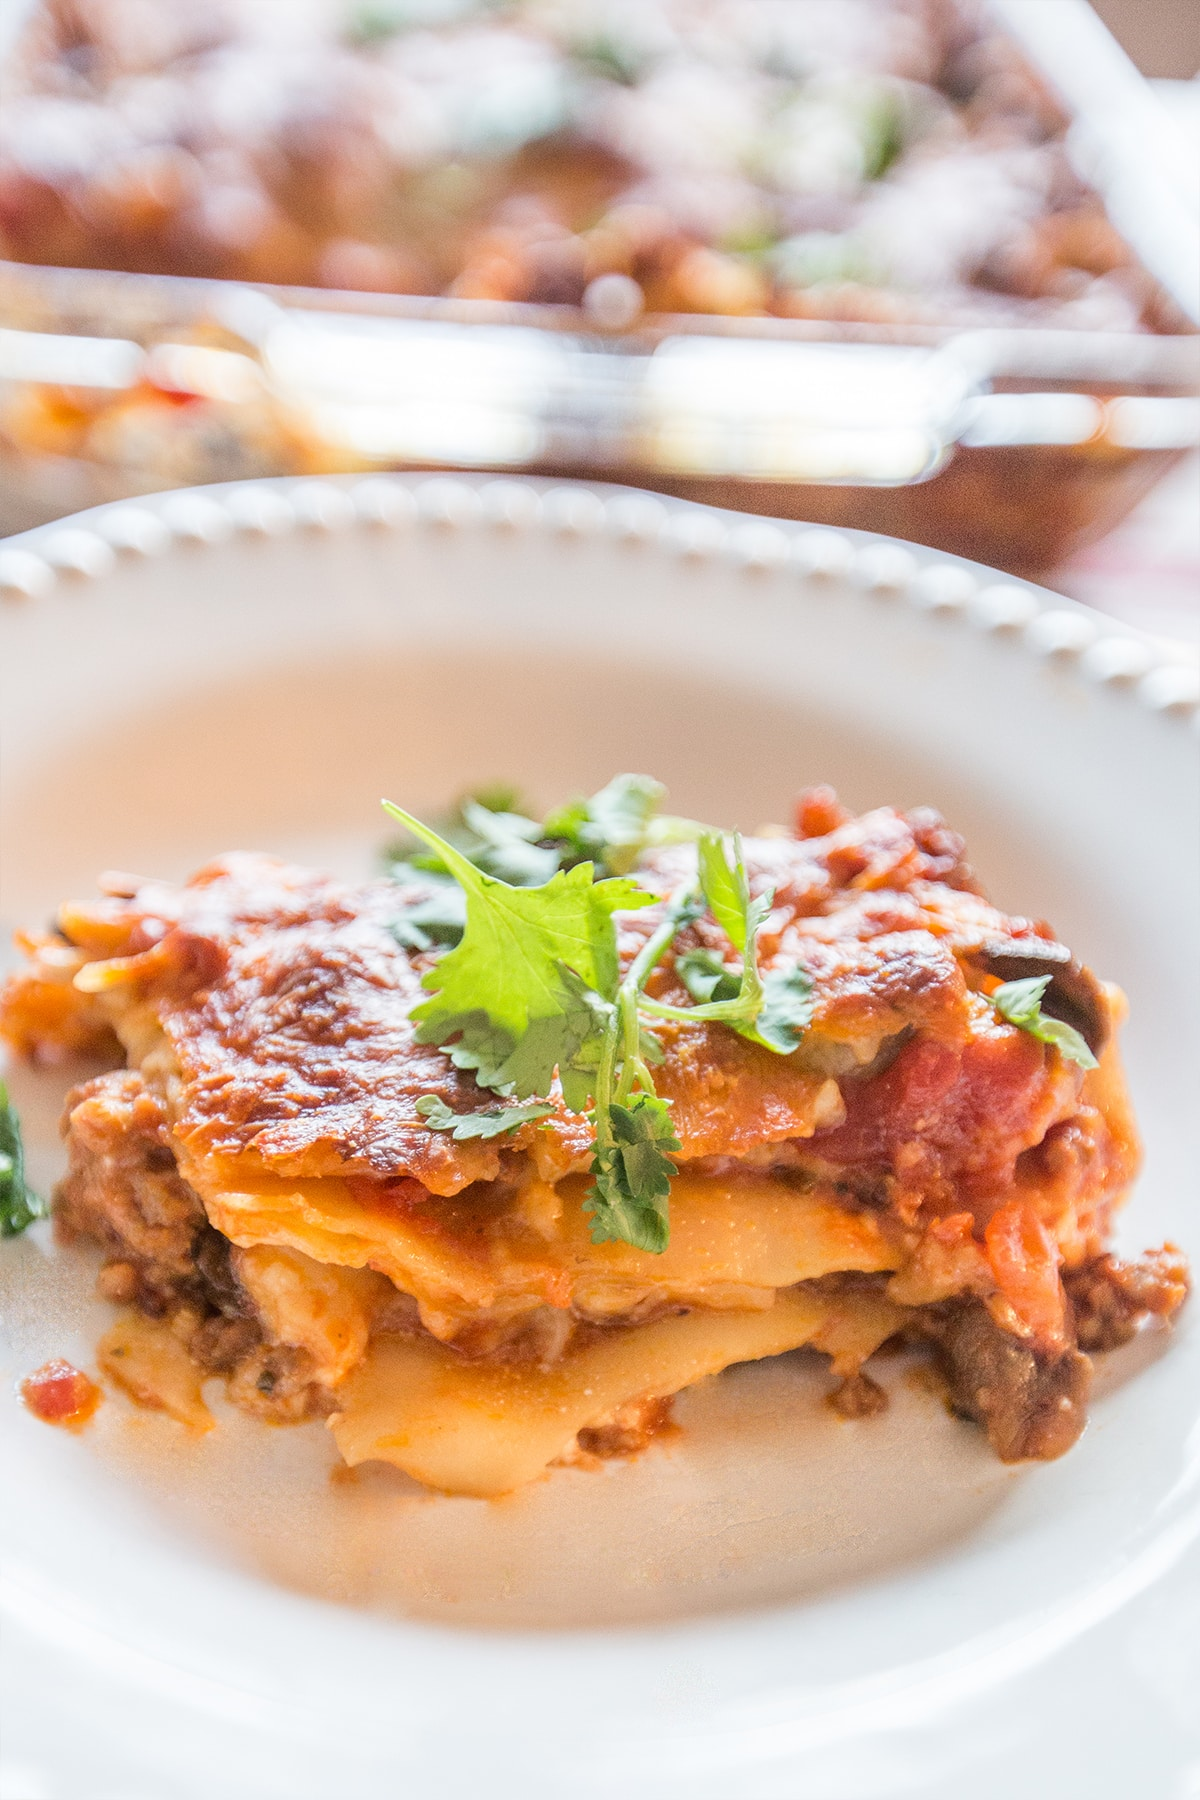 Cottage Cheese Lasagna  Our Familys Secret To Delicious, Addictive Lasagna!